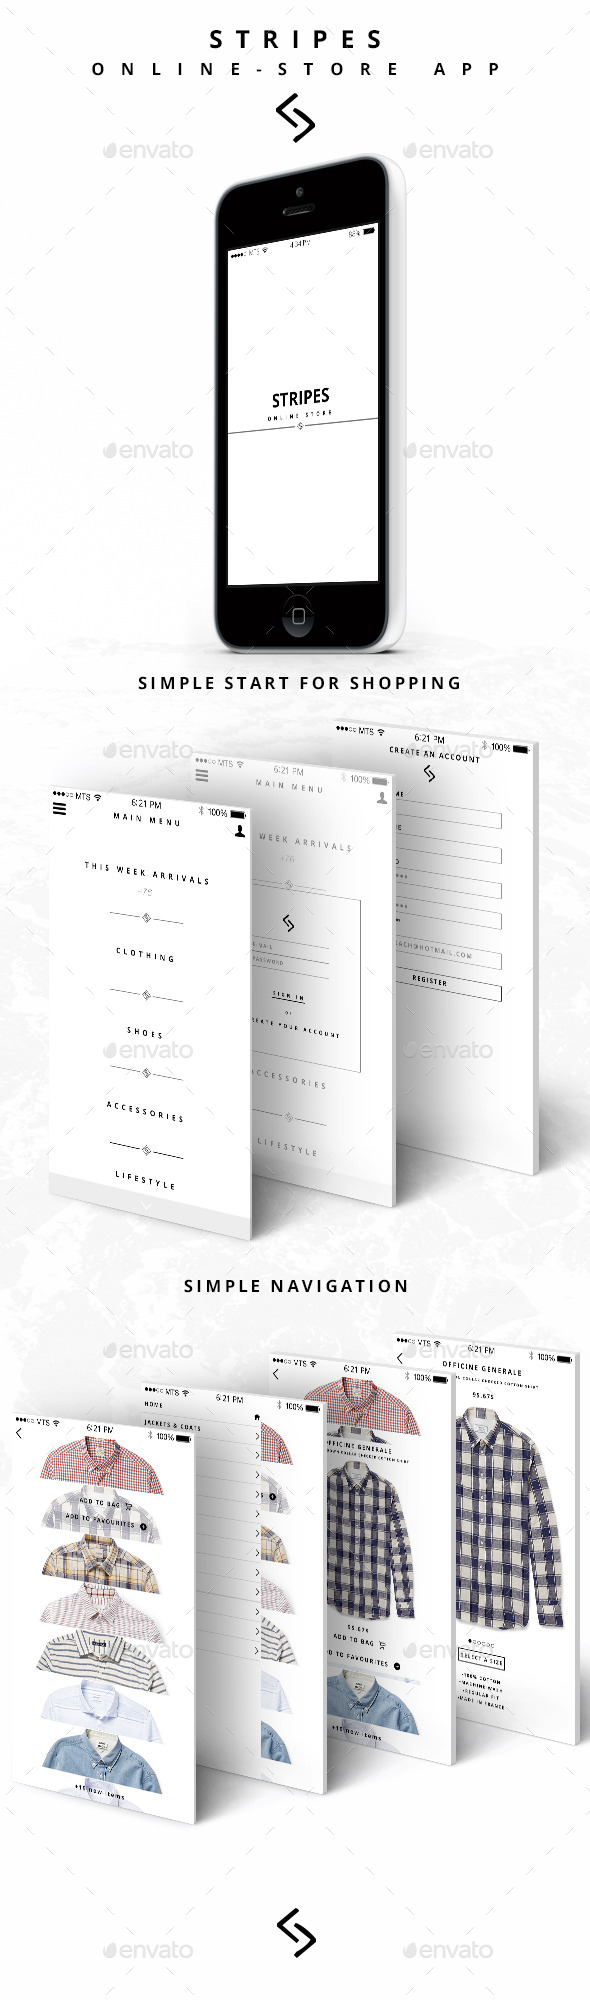 GraphicRiver Stripes Online Store App 10957149